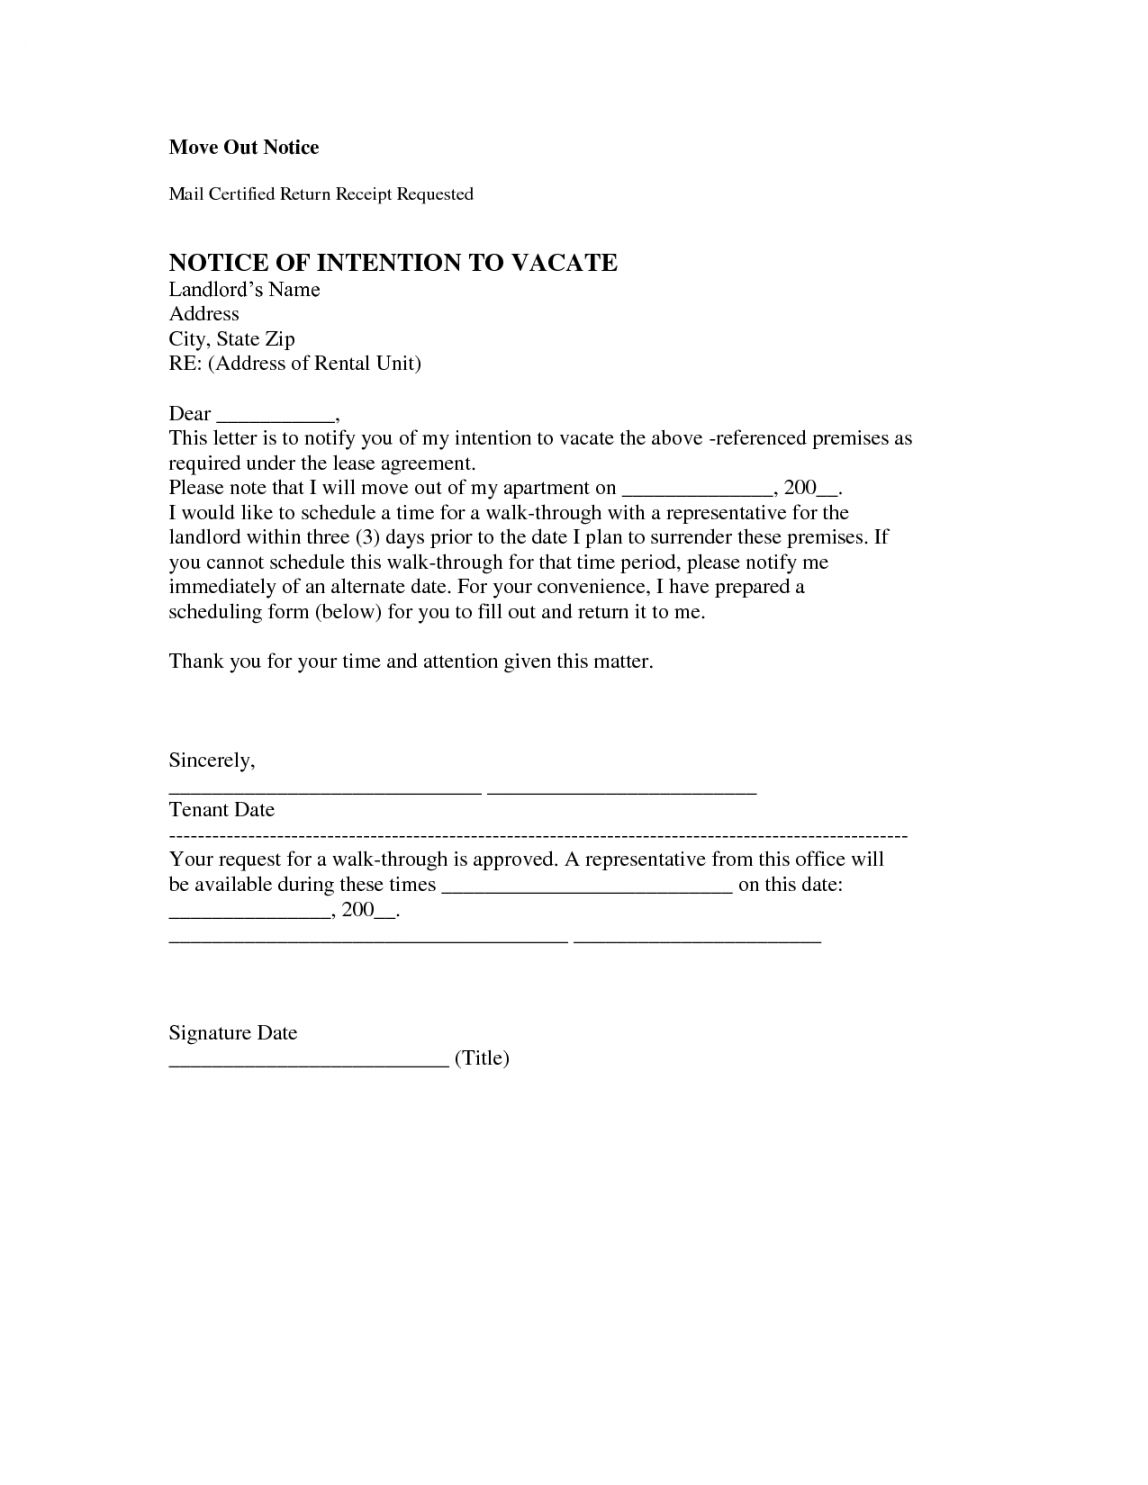 Explore Our Sample Of Template For Notice To Vacate Apartment Being A Landlord Lettering Move Out Notice